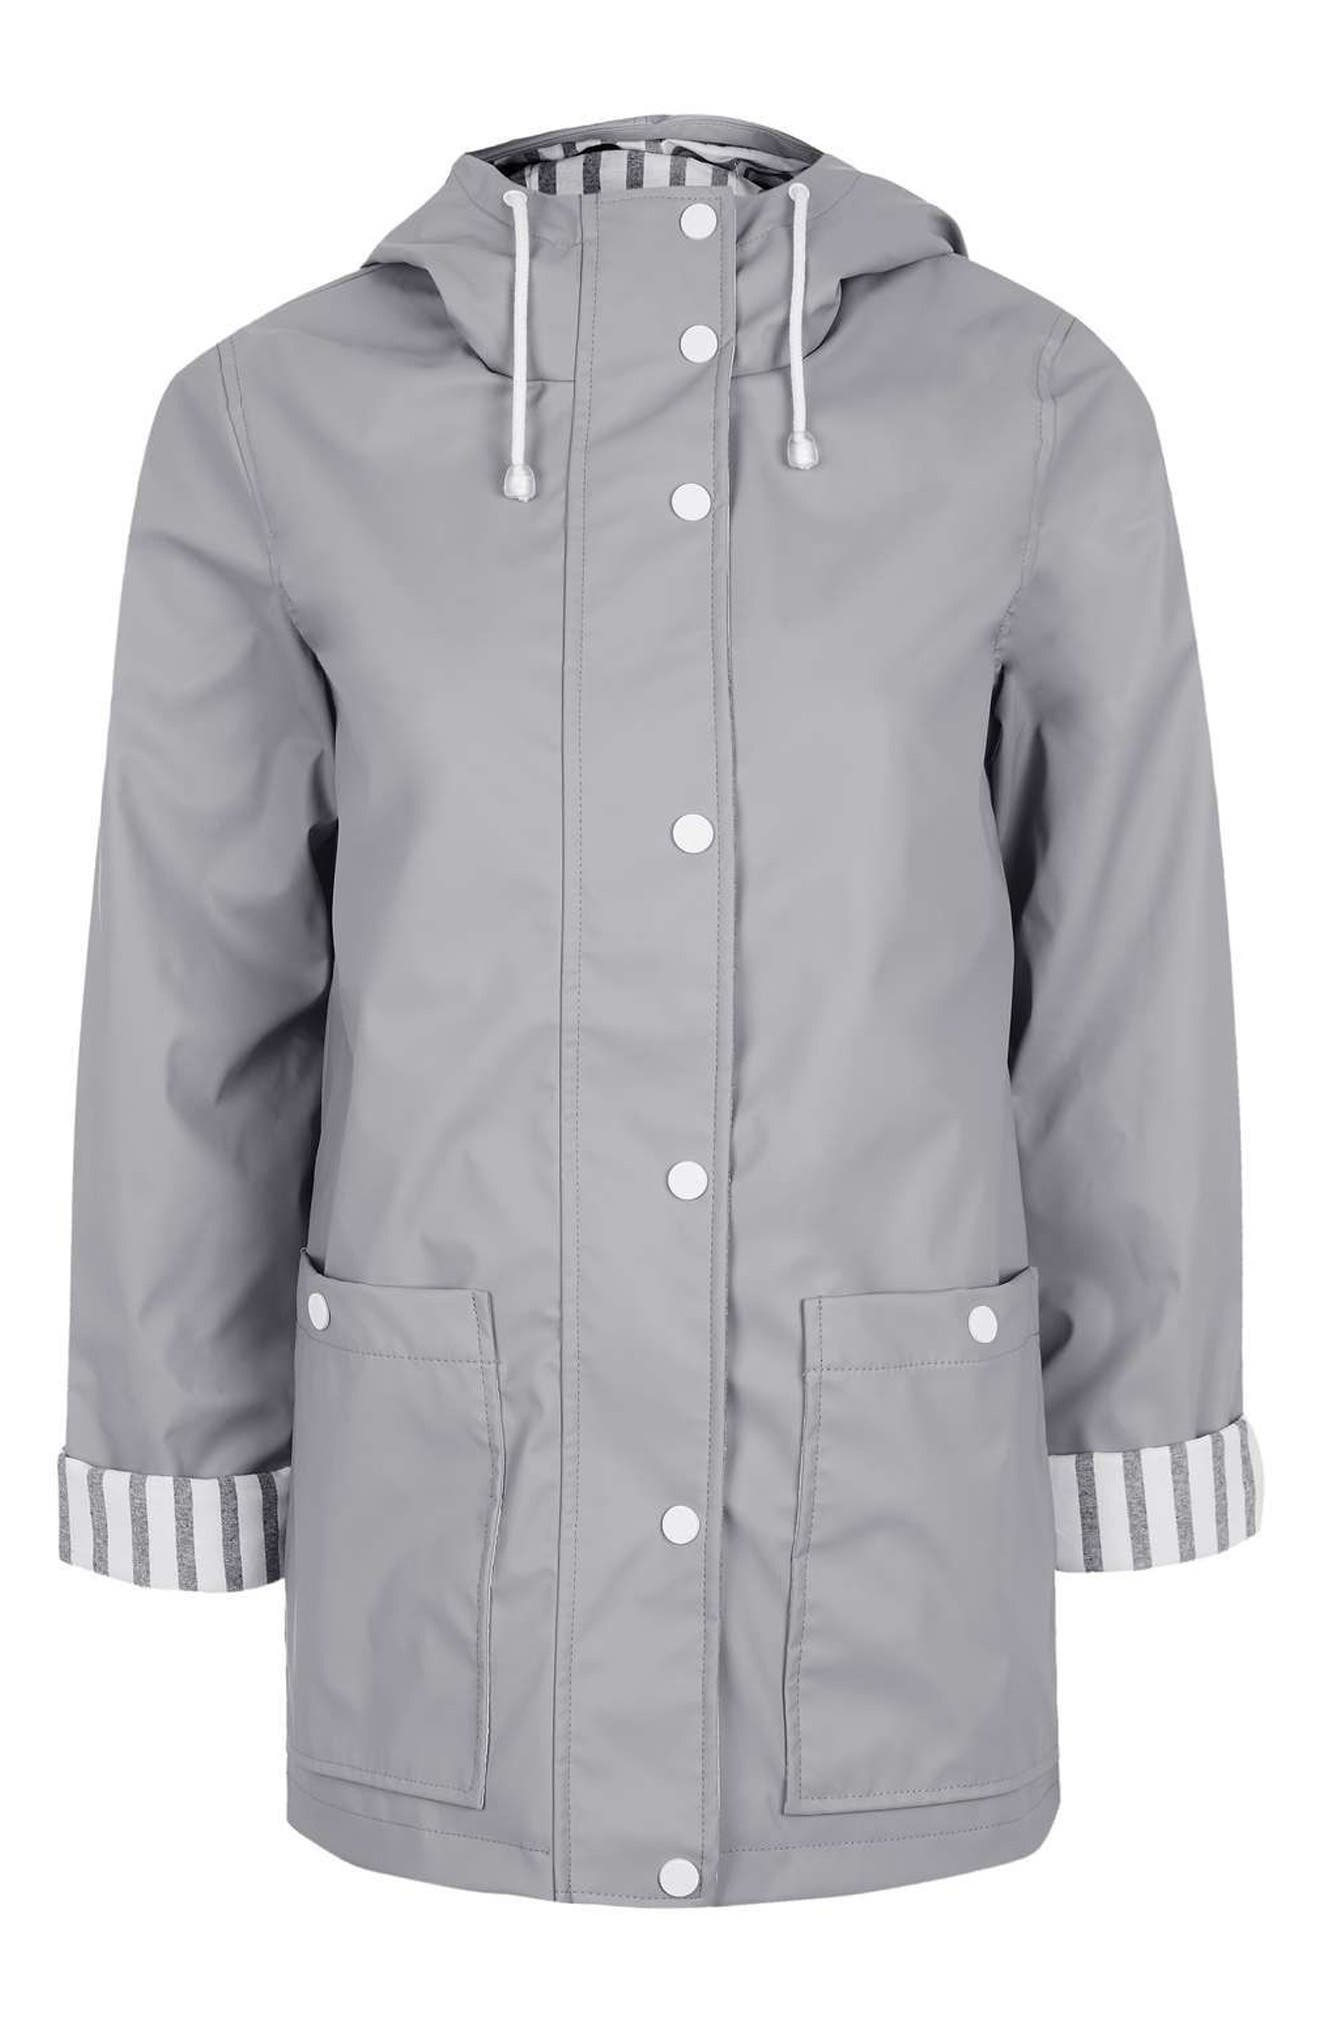 Maisie Rain Jacket,                             Alternate thumbnail 4, color,                             020